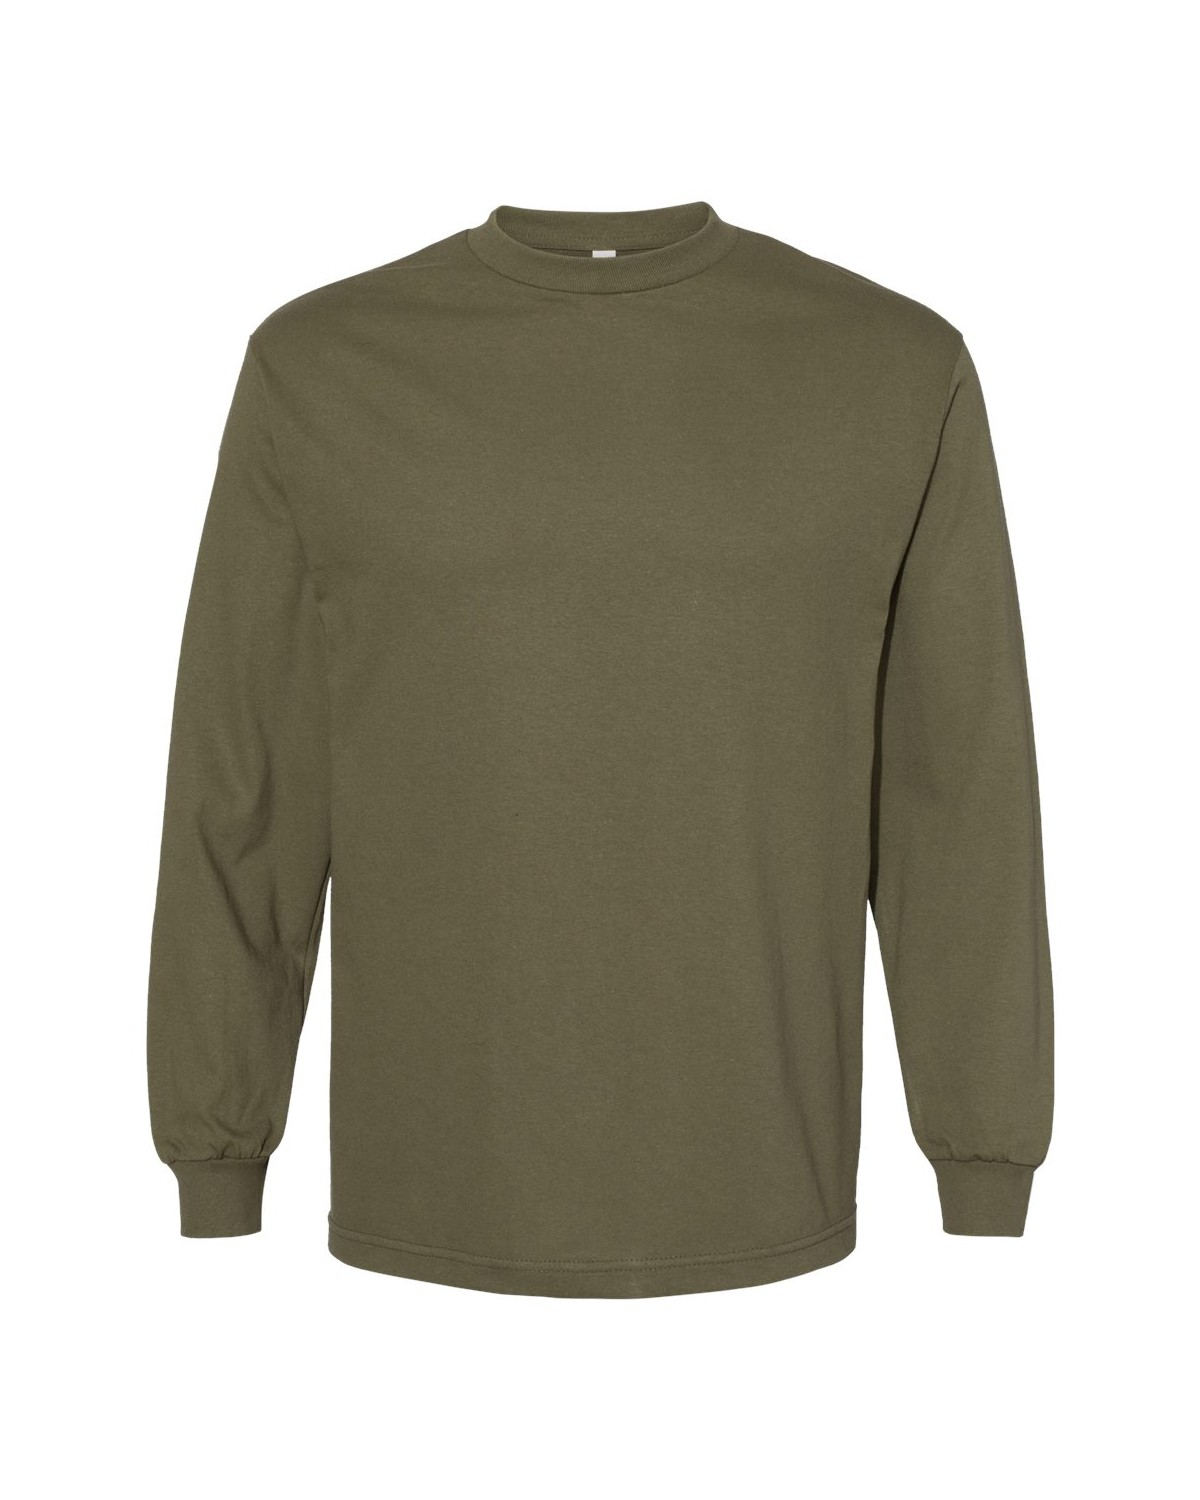 1304 Alstyle MILITARY GREEN